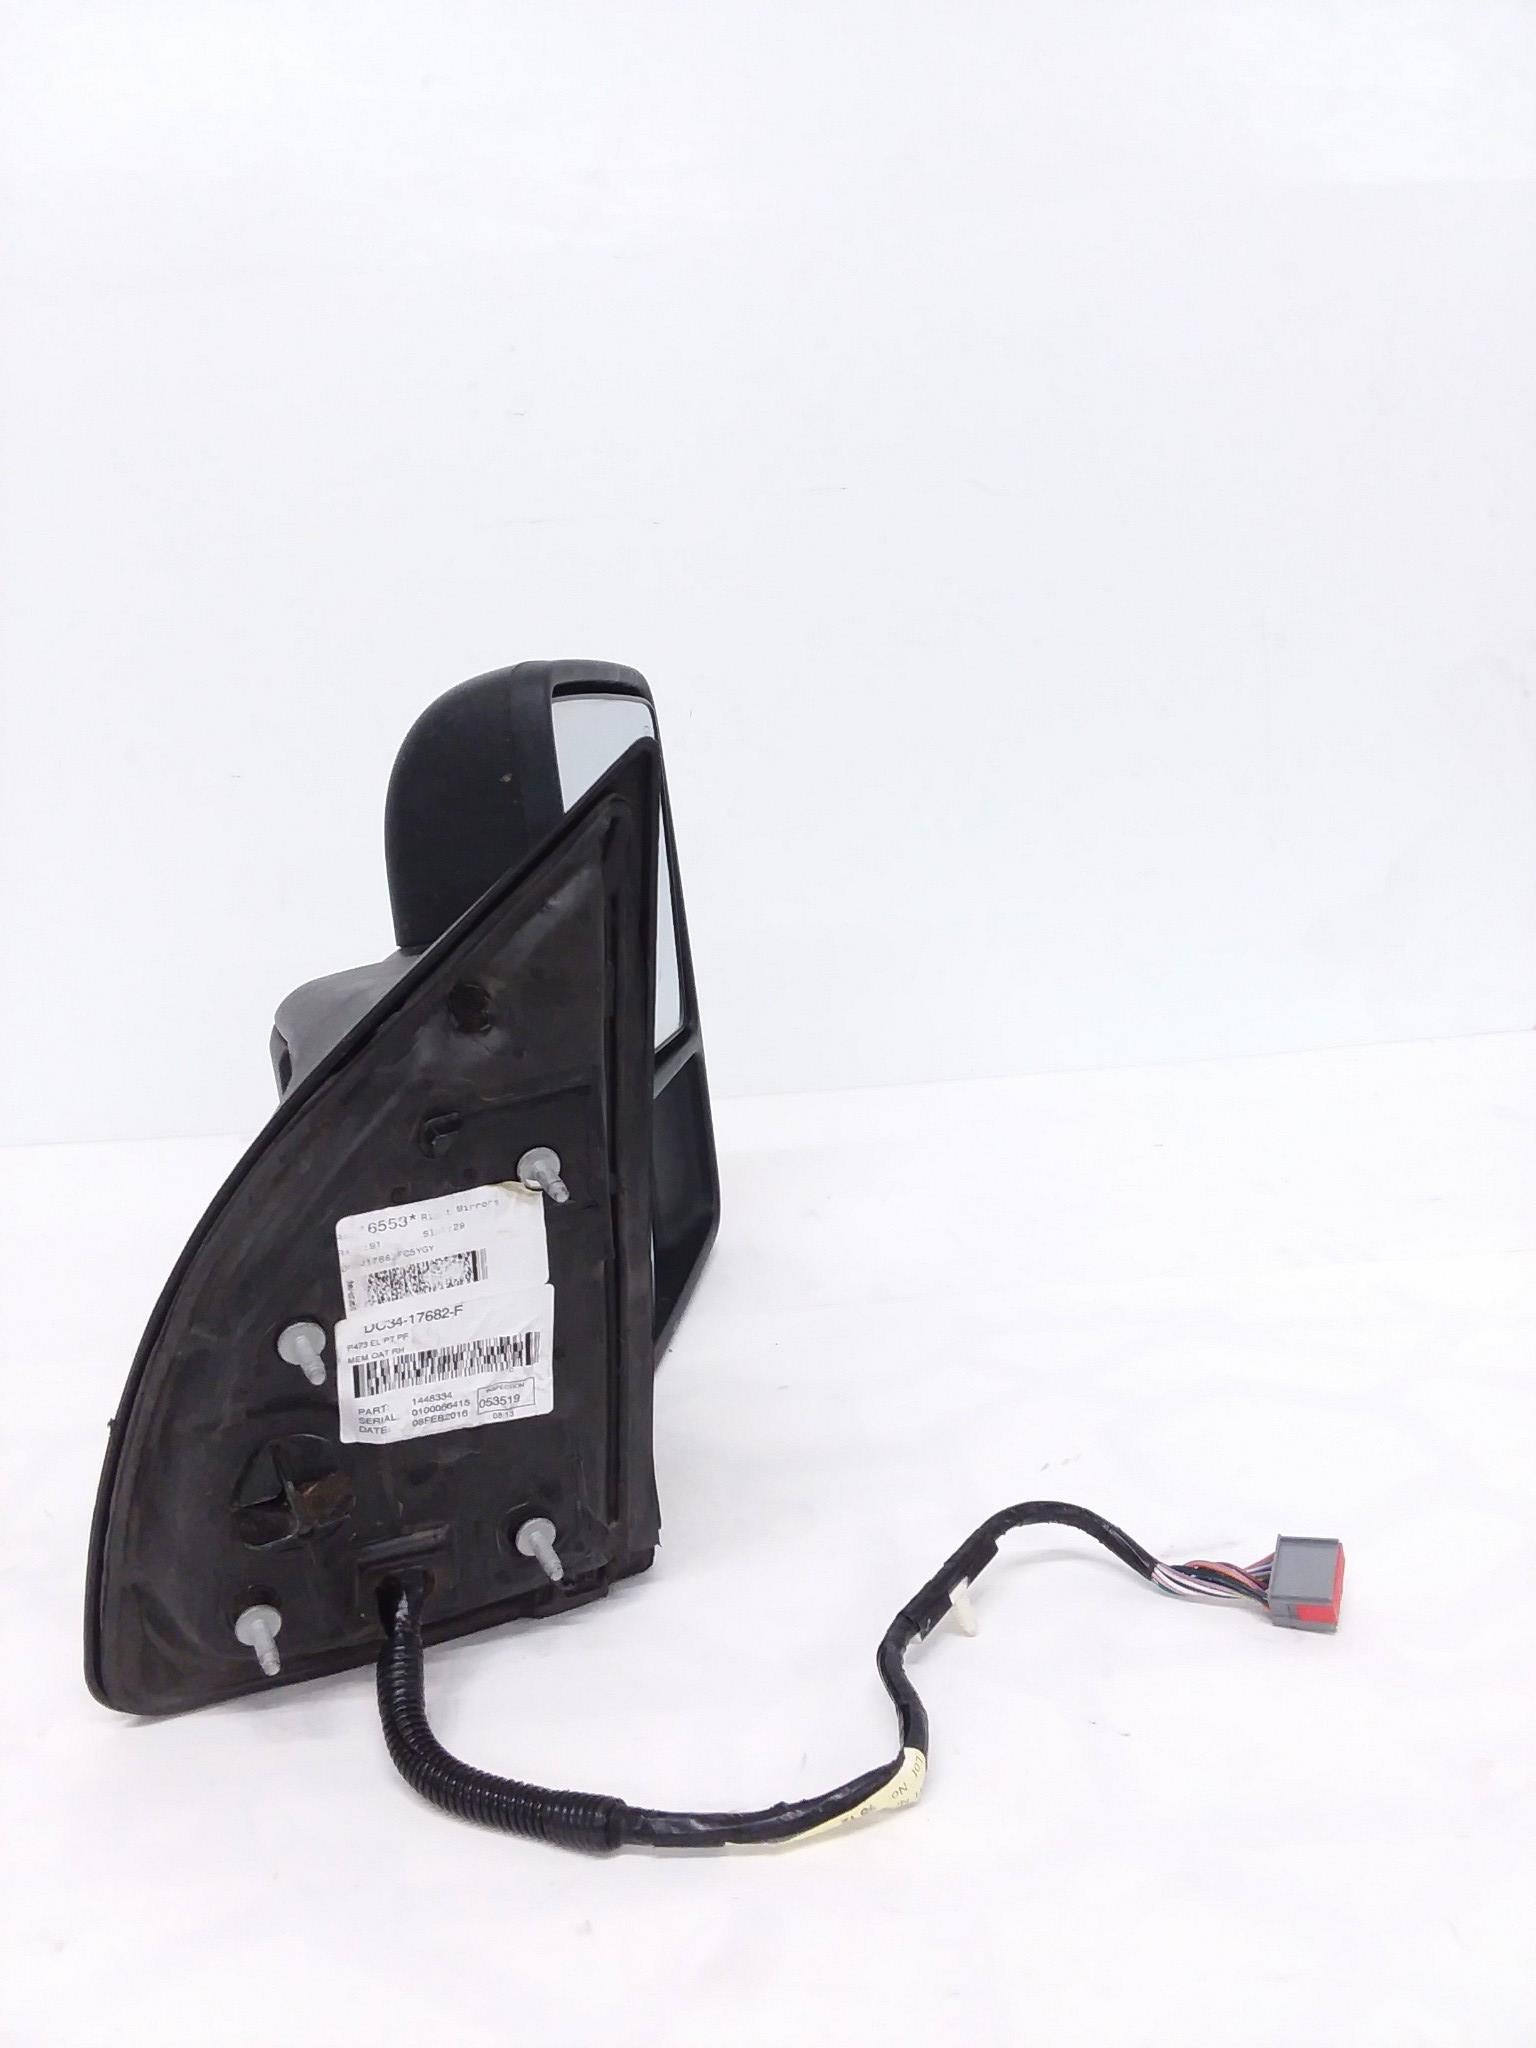 08 - 16 FORD F-250 / F-350 / F-450 / F-550 TOW MIRROR RIGHT SIDE OEM 18 WIRE - Click Receive Auto Parts